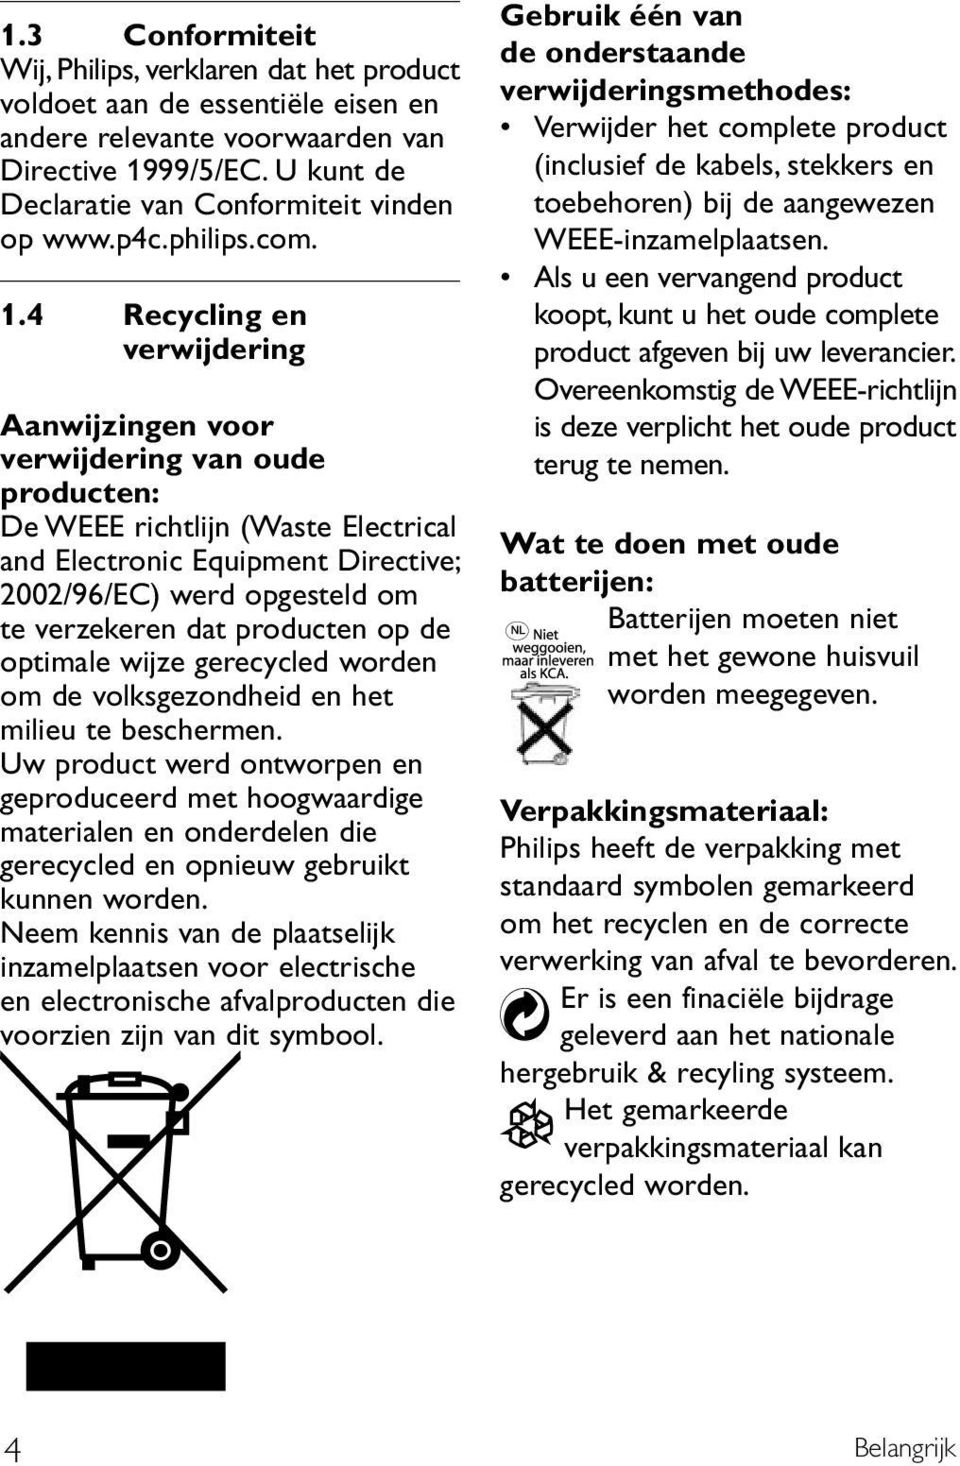 4 Recycling en verwijdering Aanwijzingen voor verwijdering van oude producten: De WEEE richtlijn (Waste Electrical and Electronic Equipment Directive; 2002/96/EC) werd opgesteld om te verzekeren dat